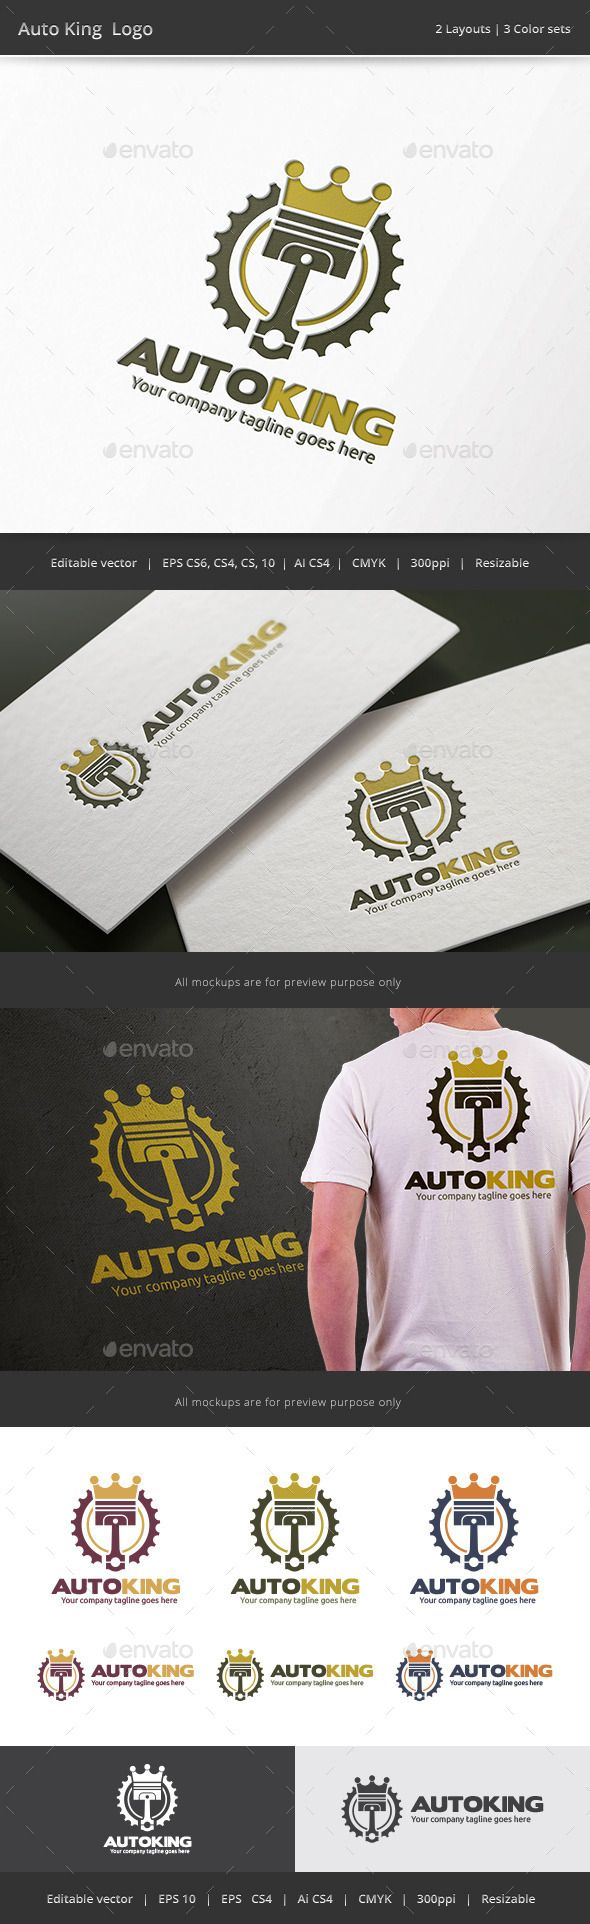 Auto King Piston Logo — Vector EPS #automobile #piston • Available here → https://graphicriver.net/item/auto-king-piston-logo/9454454?ref=pxcr